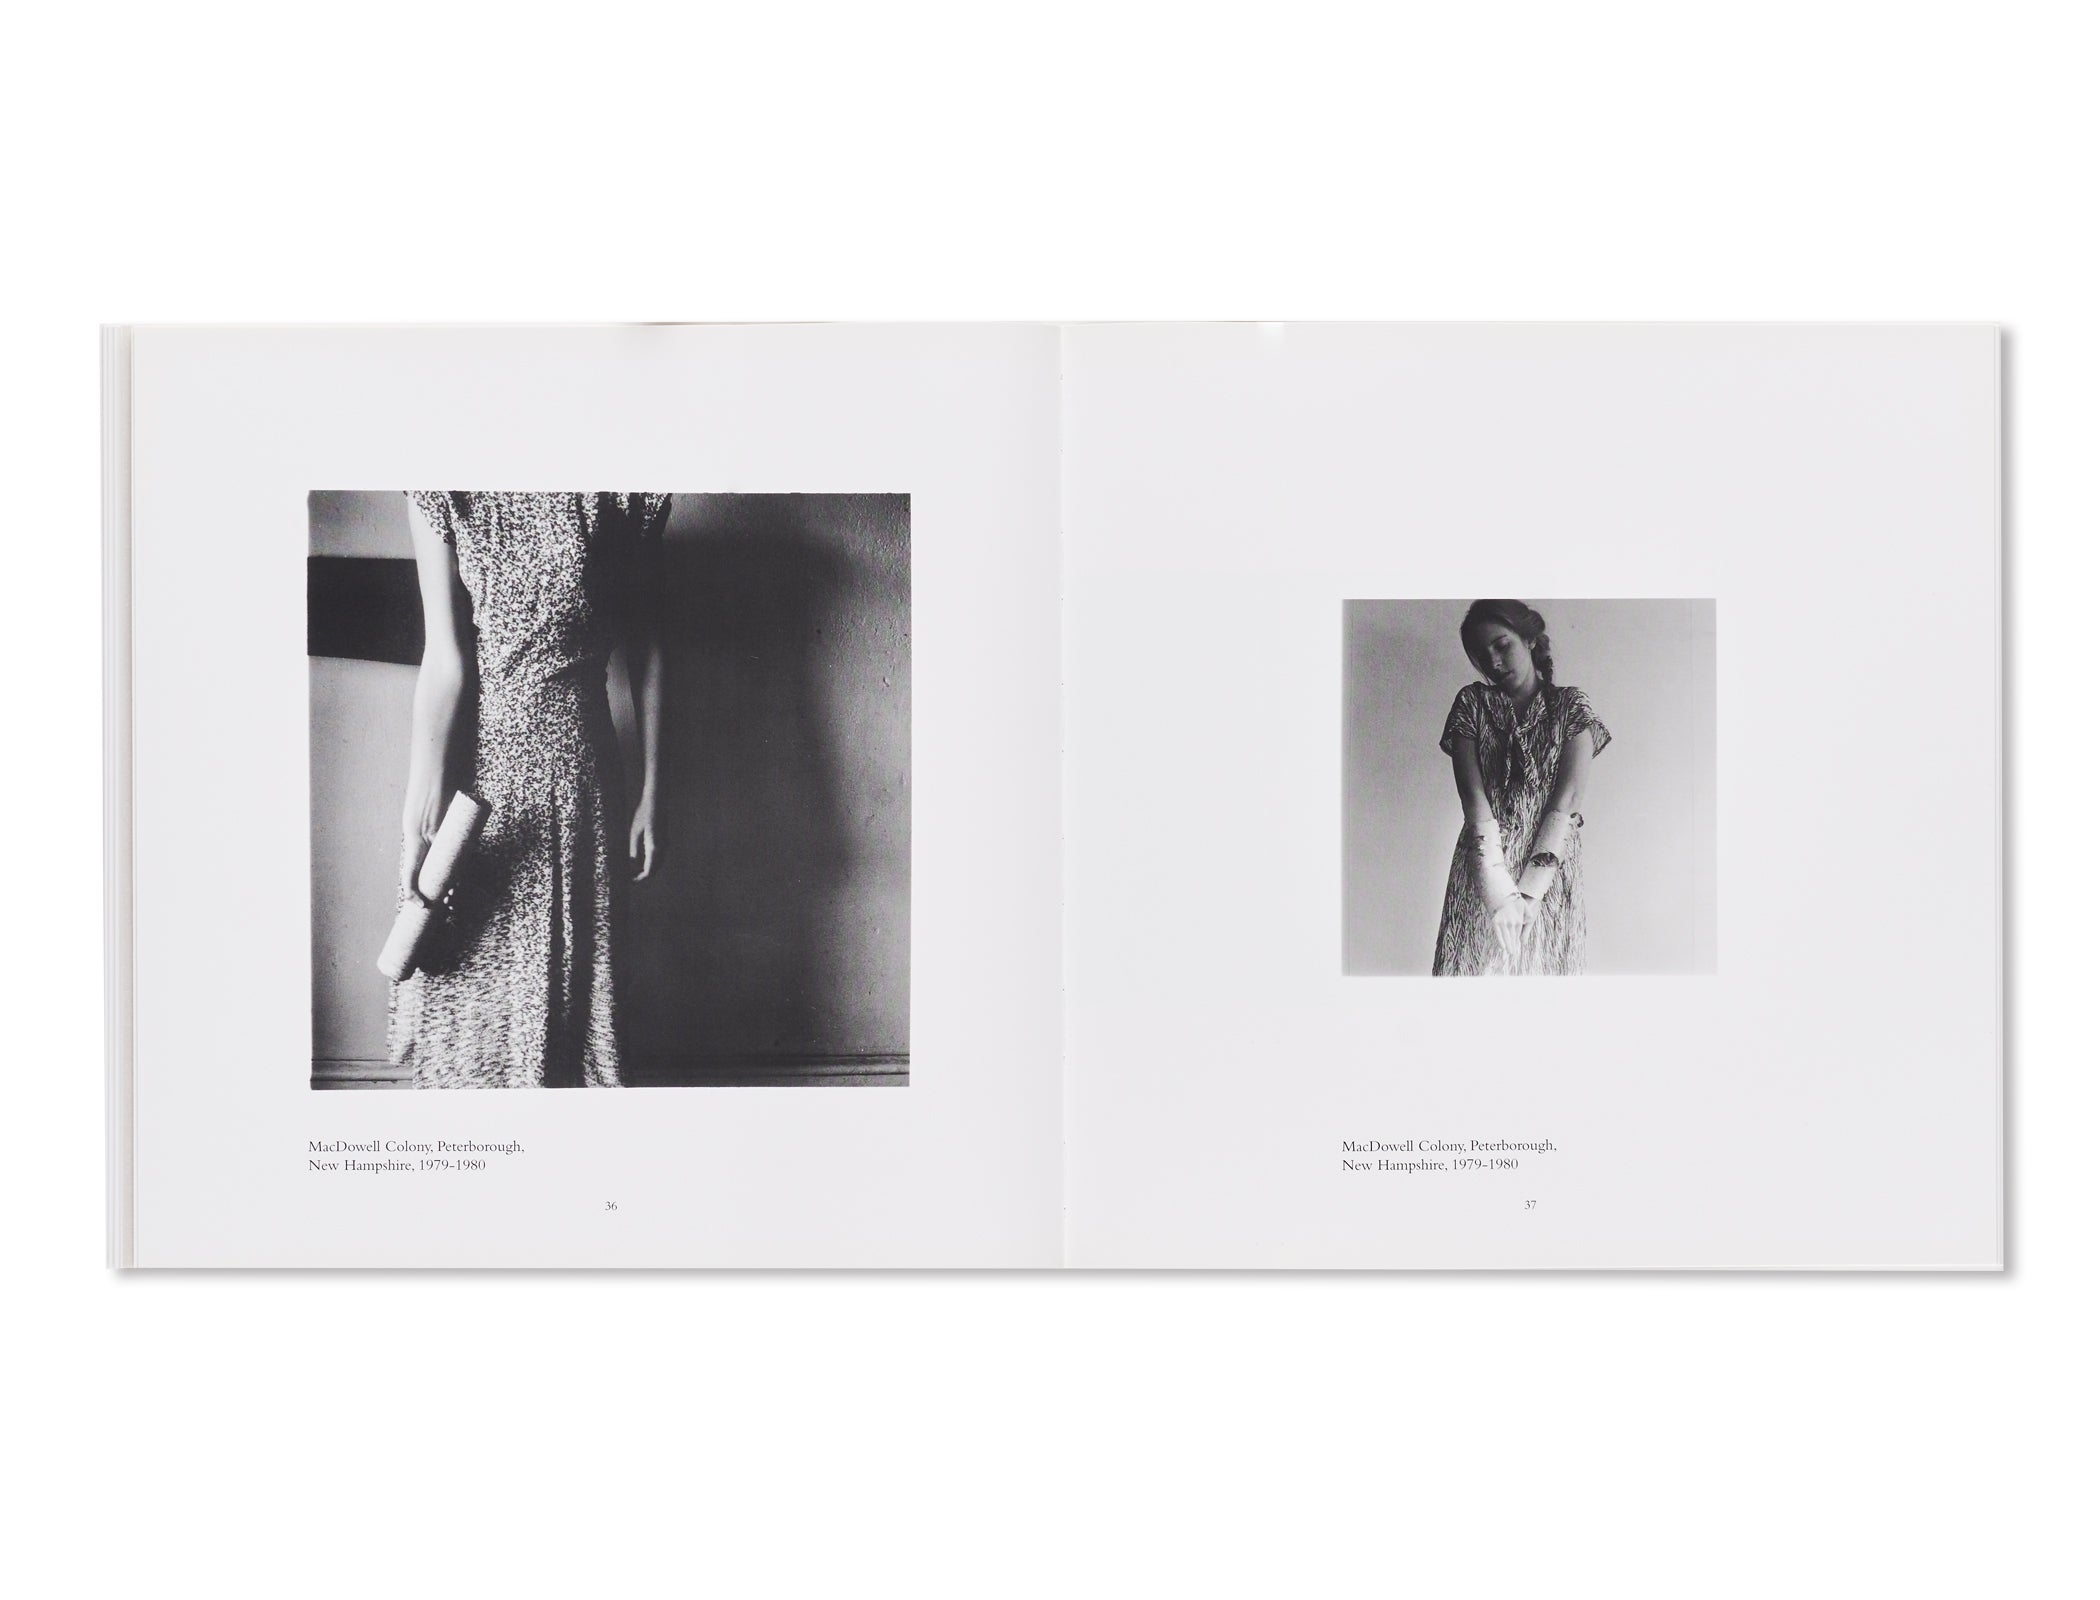 PHOTOGRAPHS 1975-1980 by Francesca Woodman